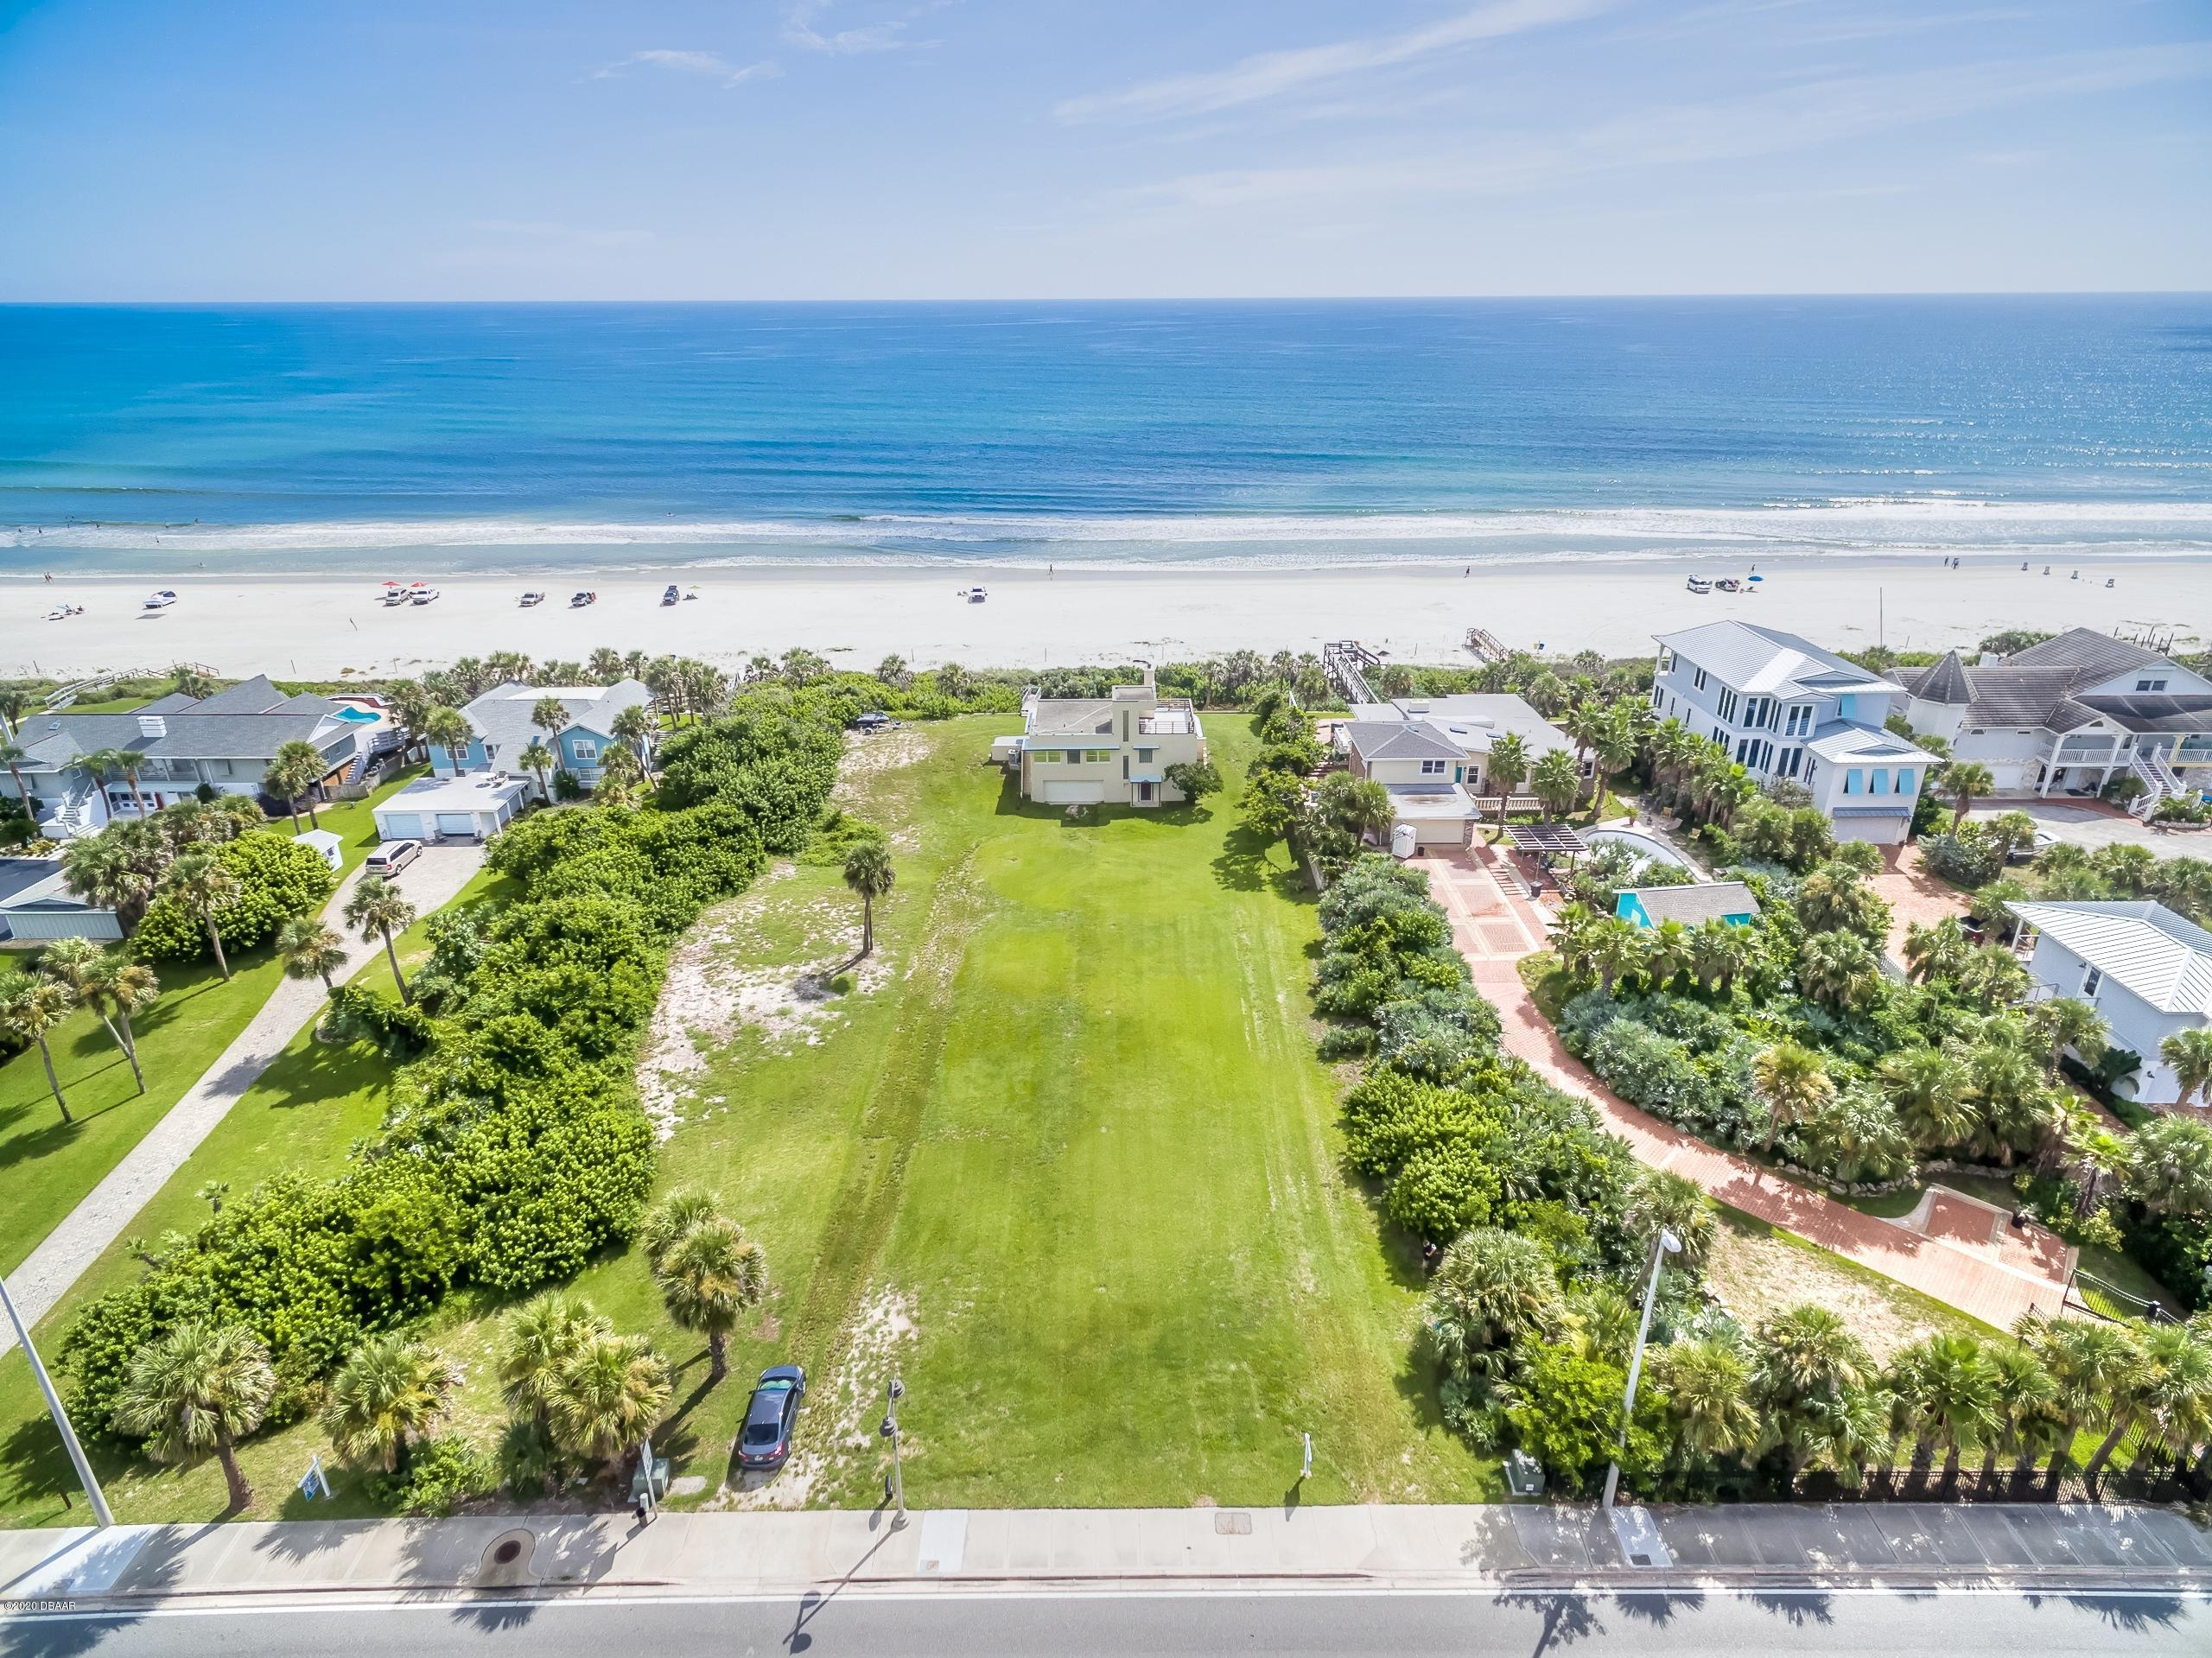 Photo of 2737 S Atlantic Avenue, Daytona Beach Shores, FL 32118